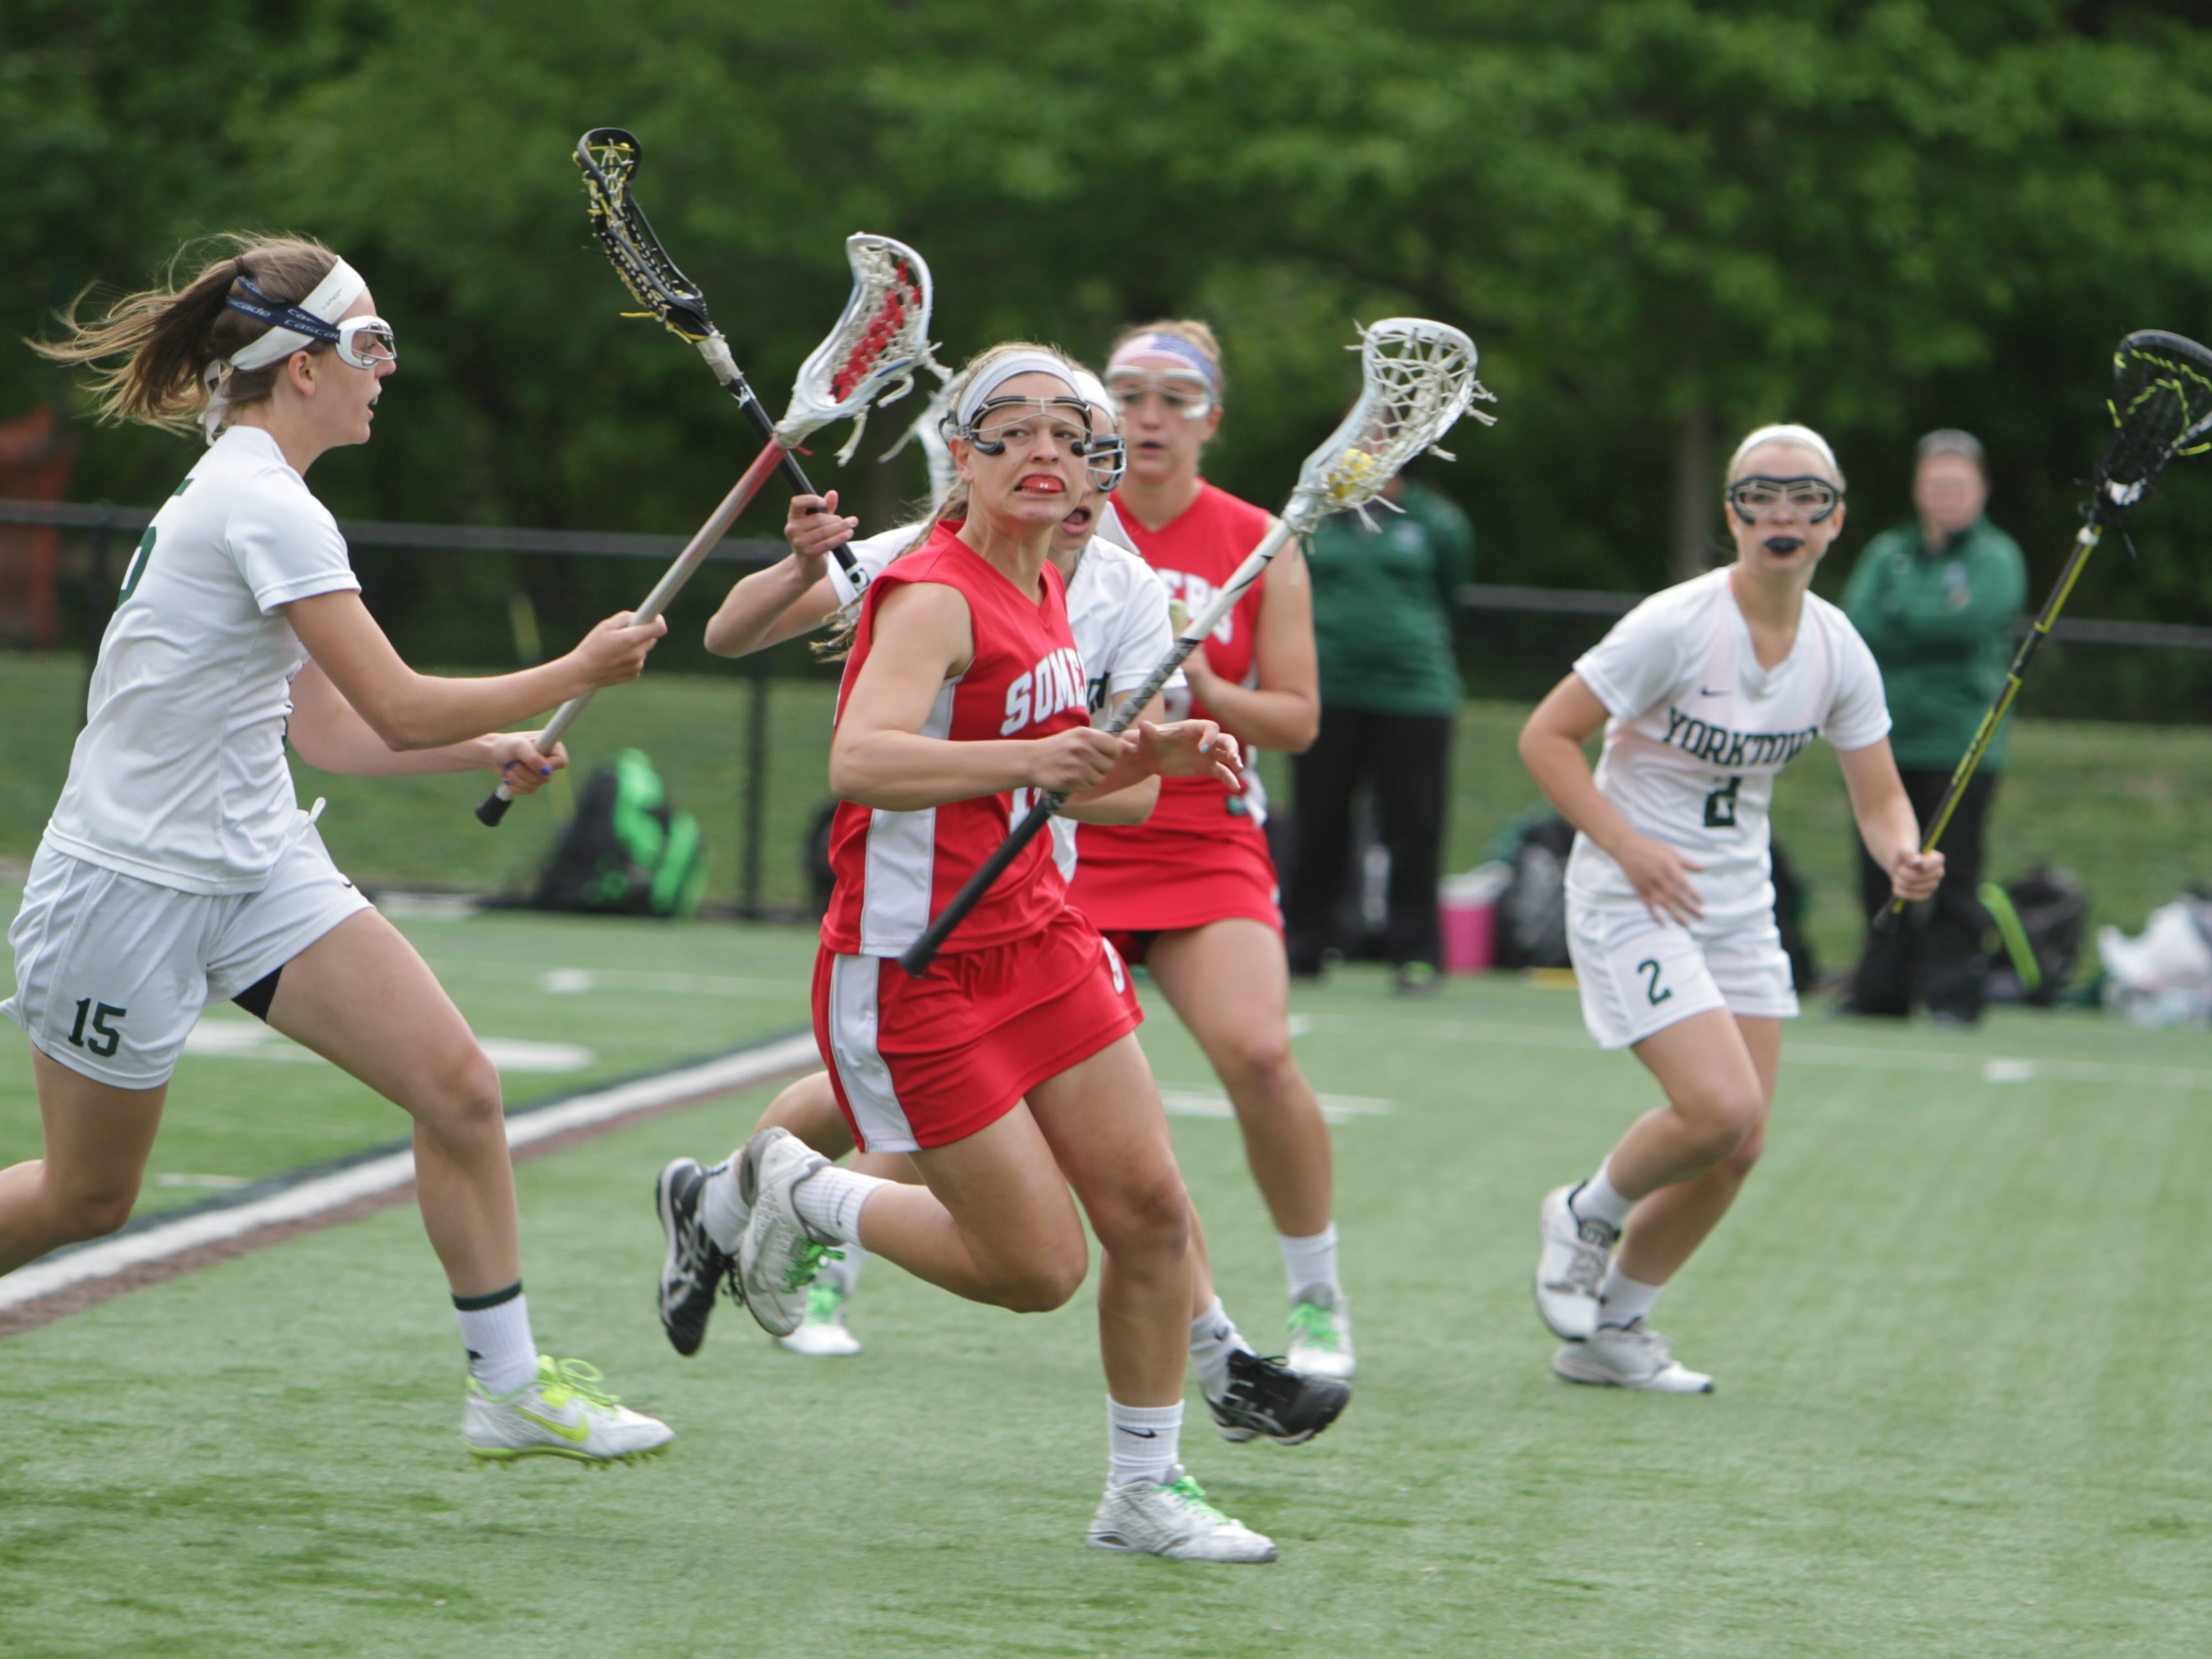 Somers' Izza LaRocca (14) is defended by Yorktown's Ashley Stilo during the Class B final at Torne Valley Stadium. Somers won 10-9.